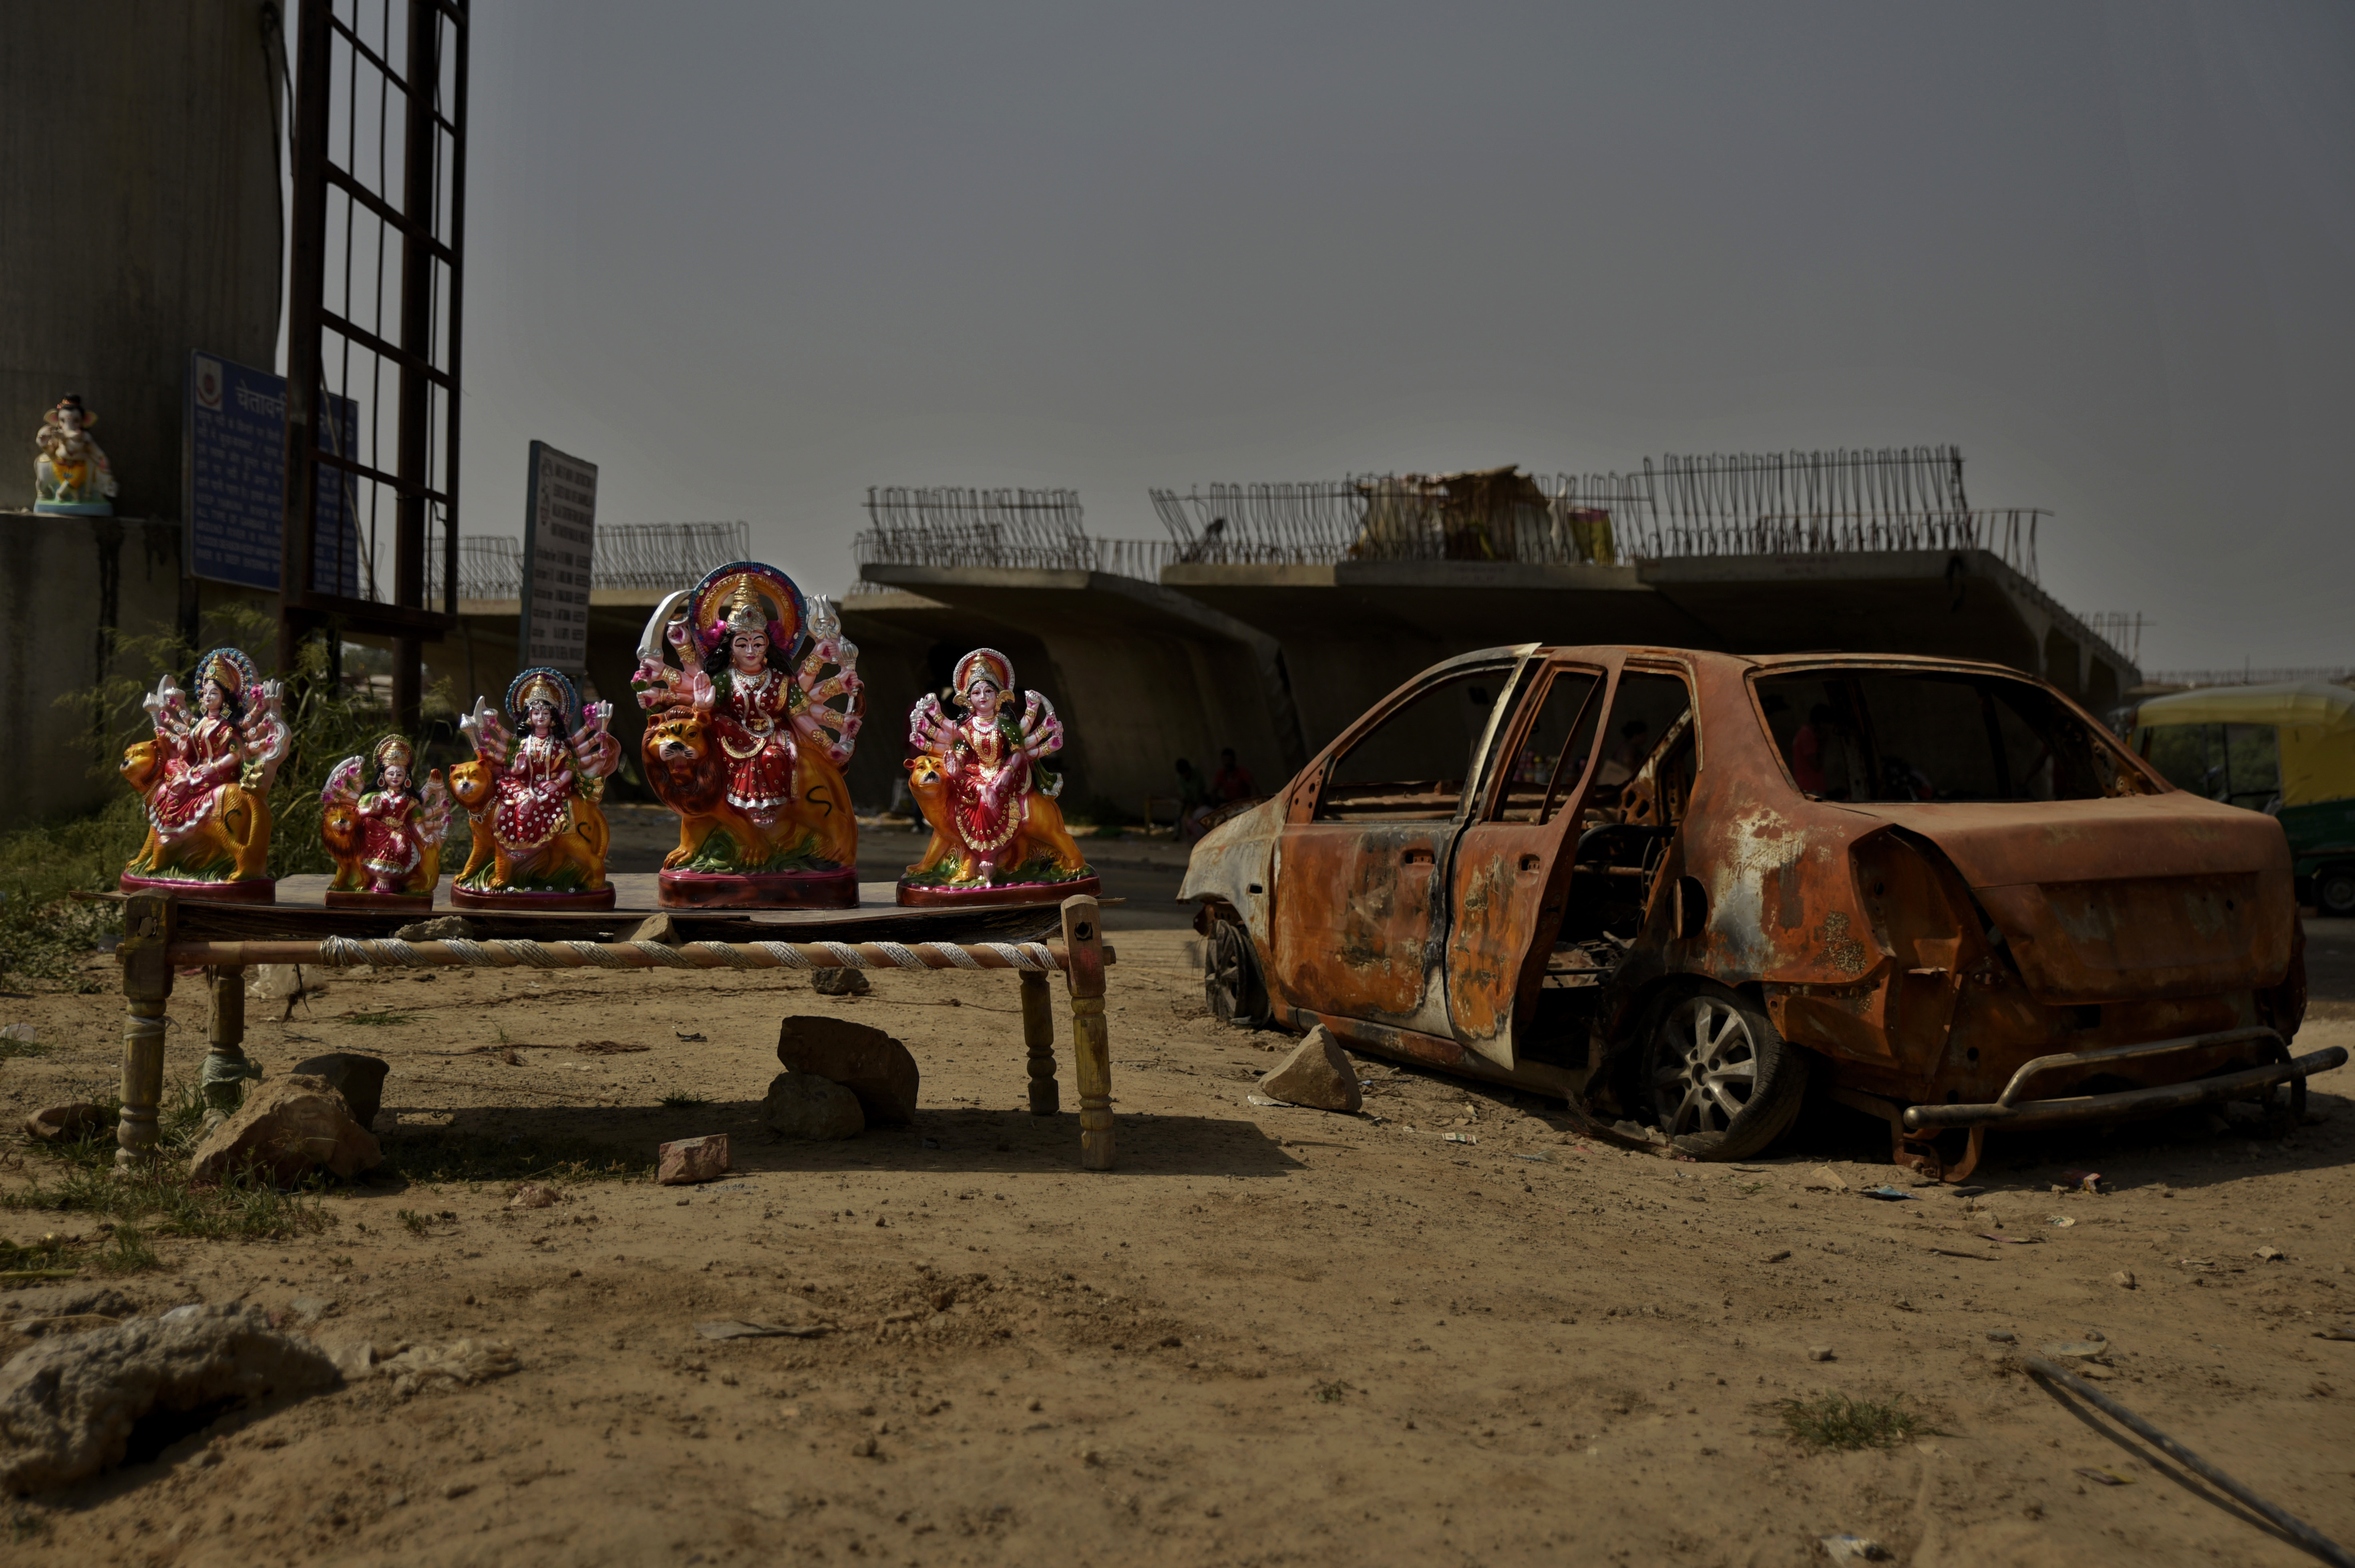 Idols of Hindu goddess Durga are displayed for sale on a roadside next to the remains of a damaged car in New Delhi - AP